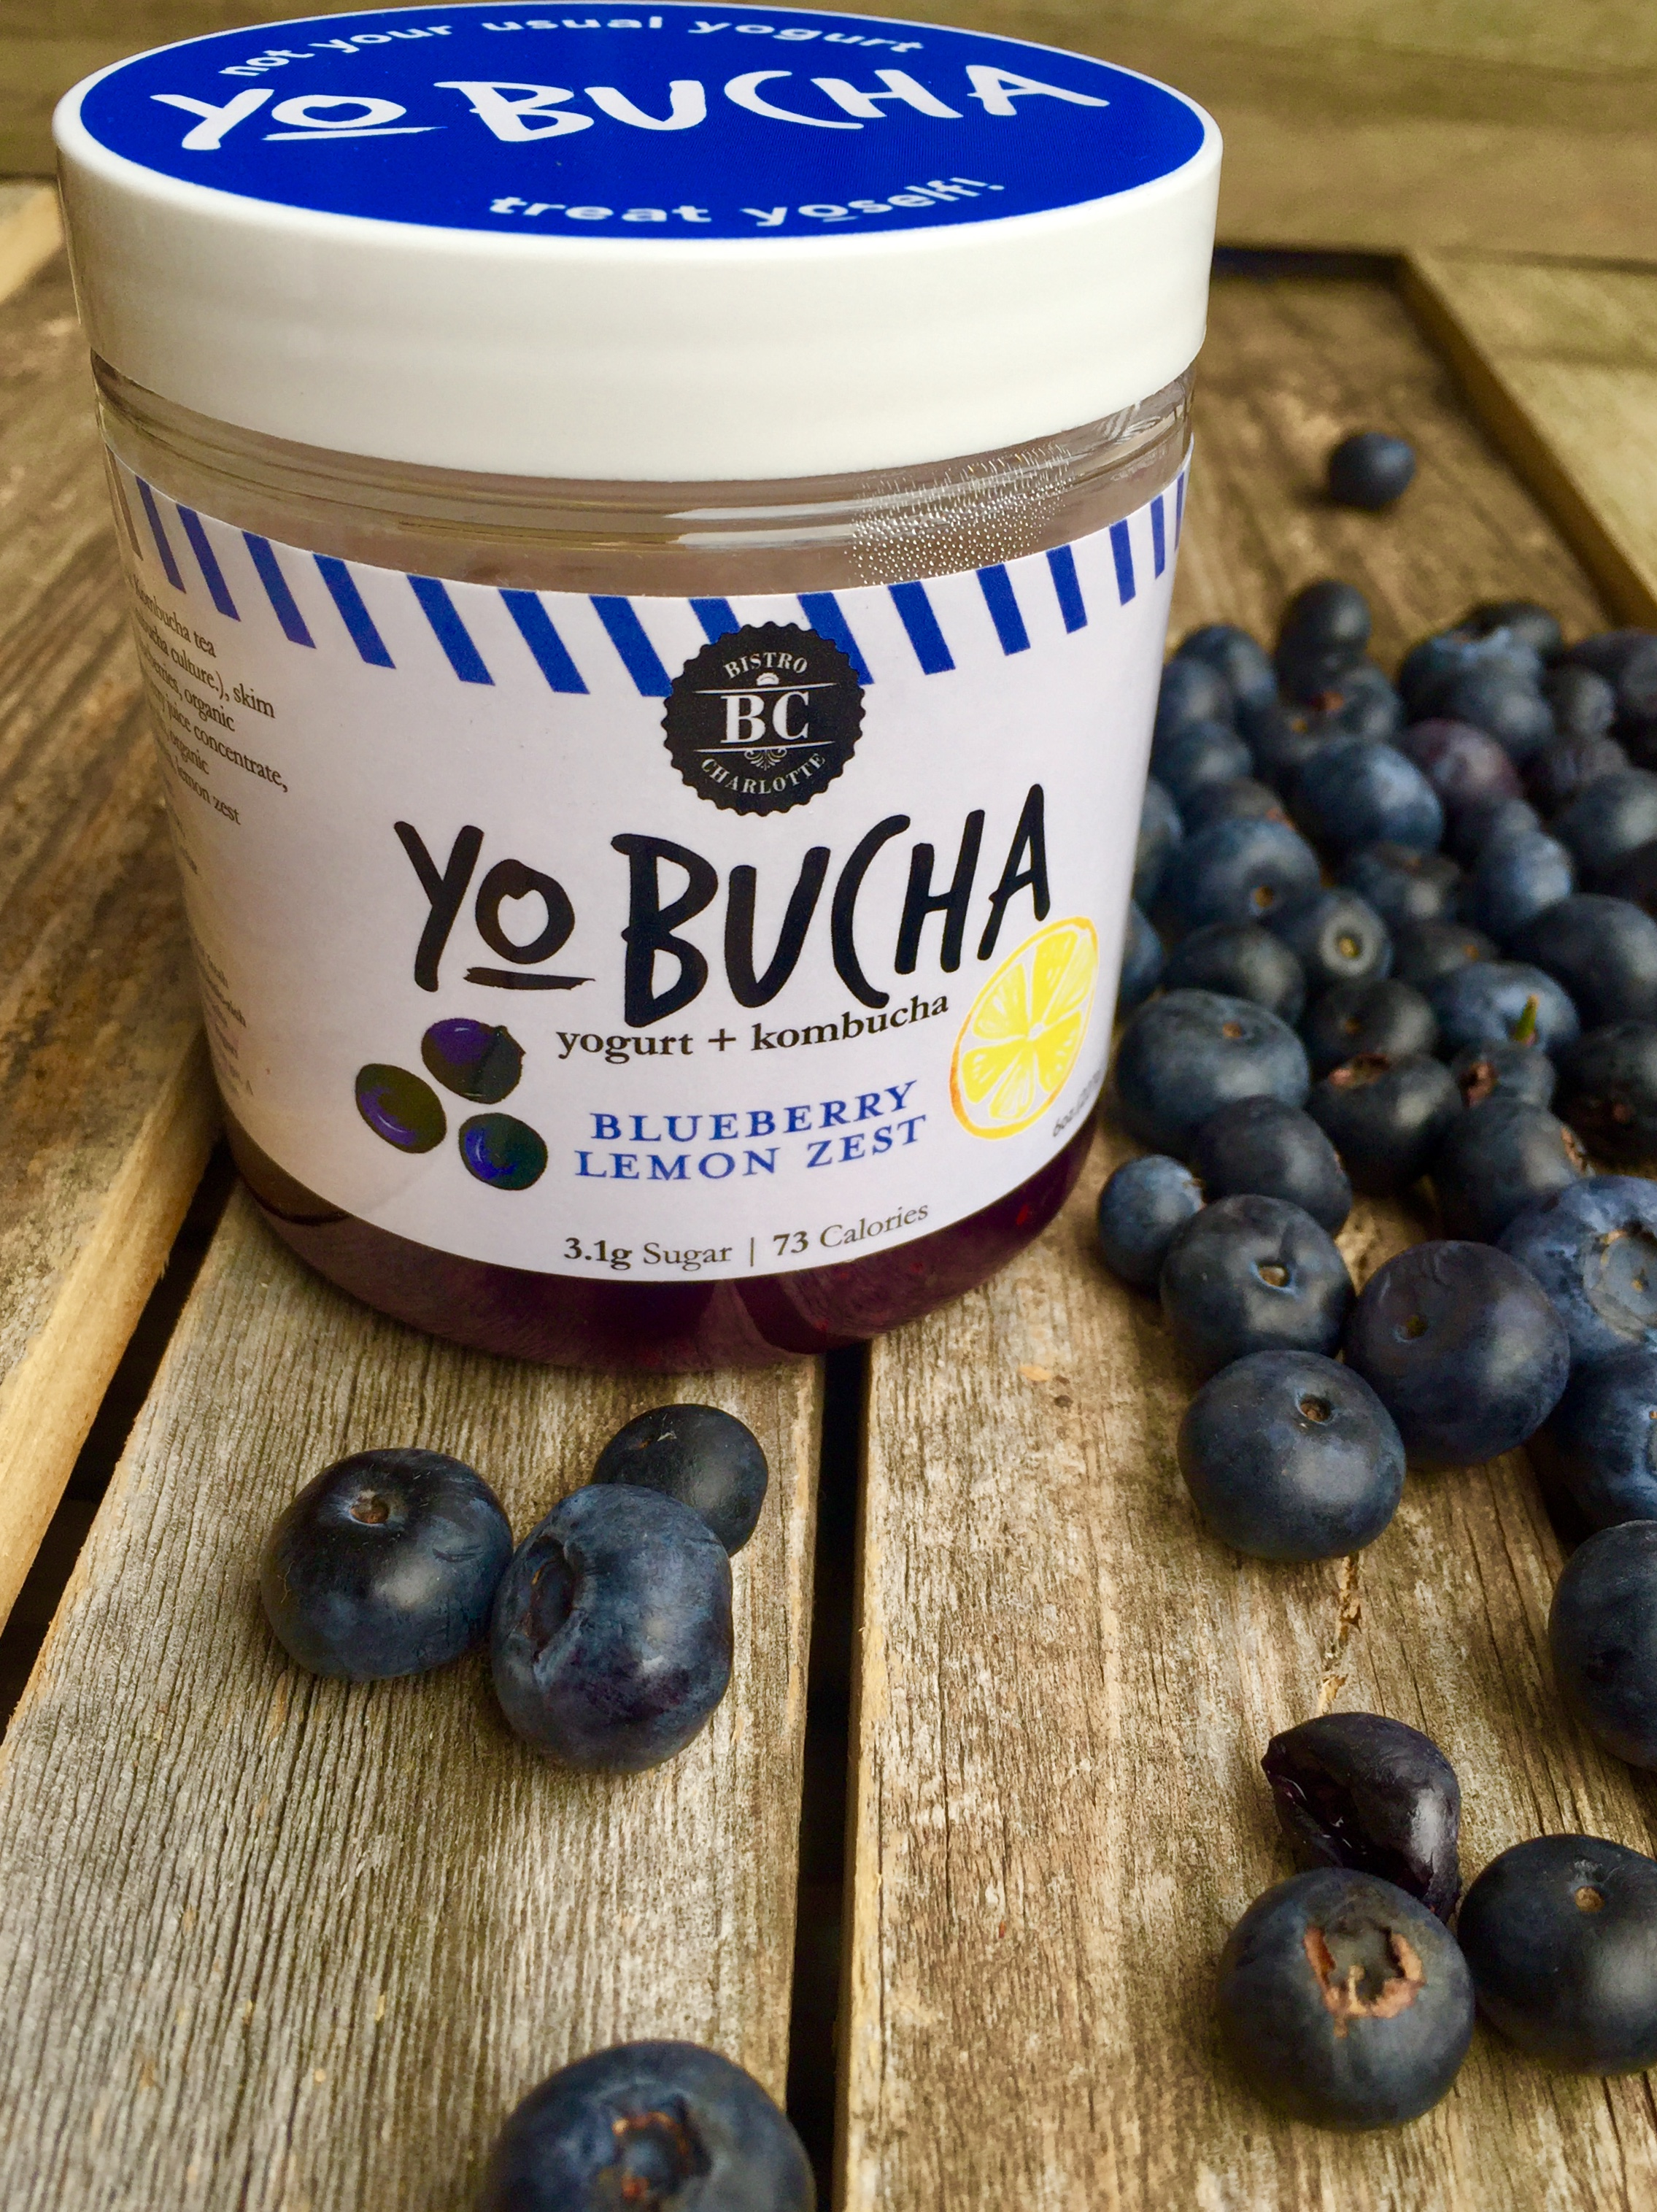 Blueberry Lemon Yo-Bucha - The perfect snack for getting you through that mid-morning slump! The bottom layer is sweet and tart, while the top layer is creamy and luscious. Bold blueberry and fresh lemon create a flavor that feels like tea-time in an English garden, no matter where you are!